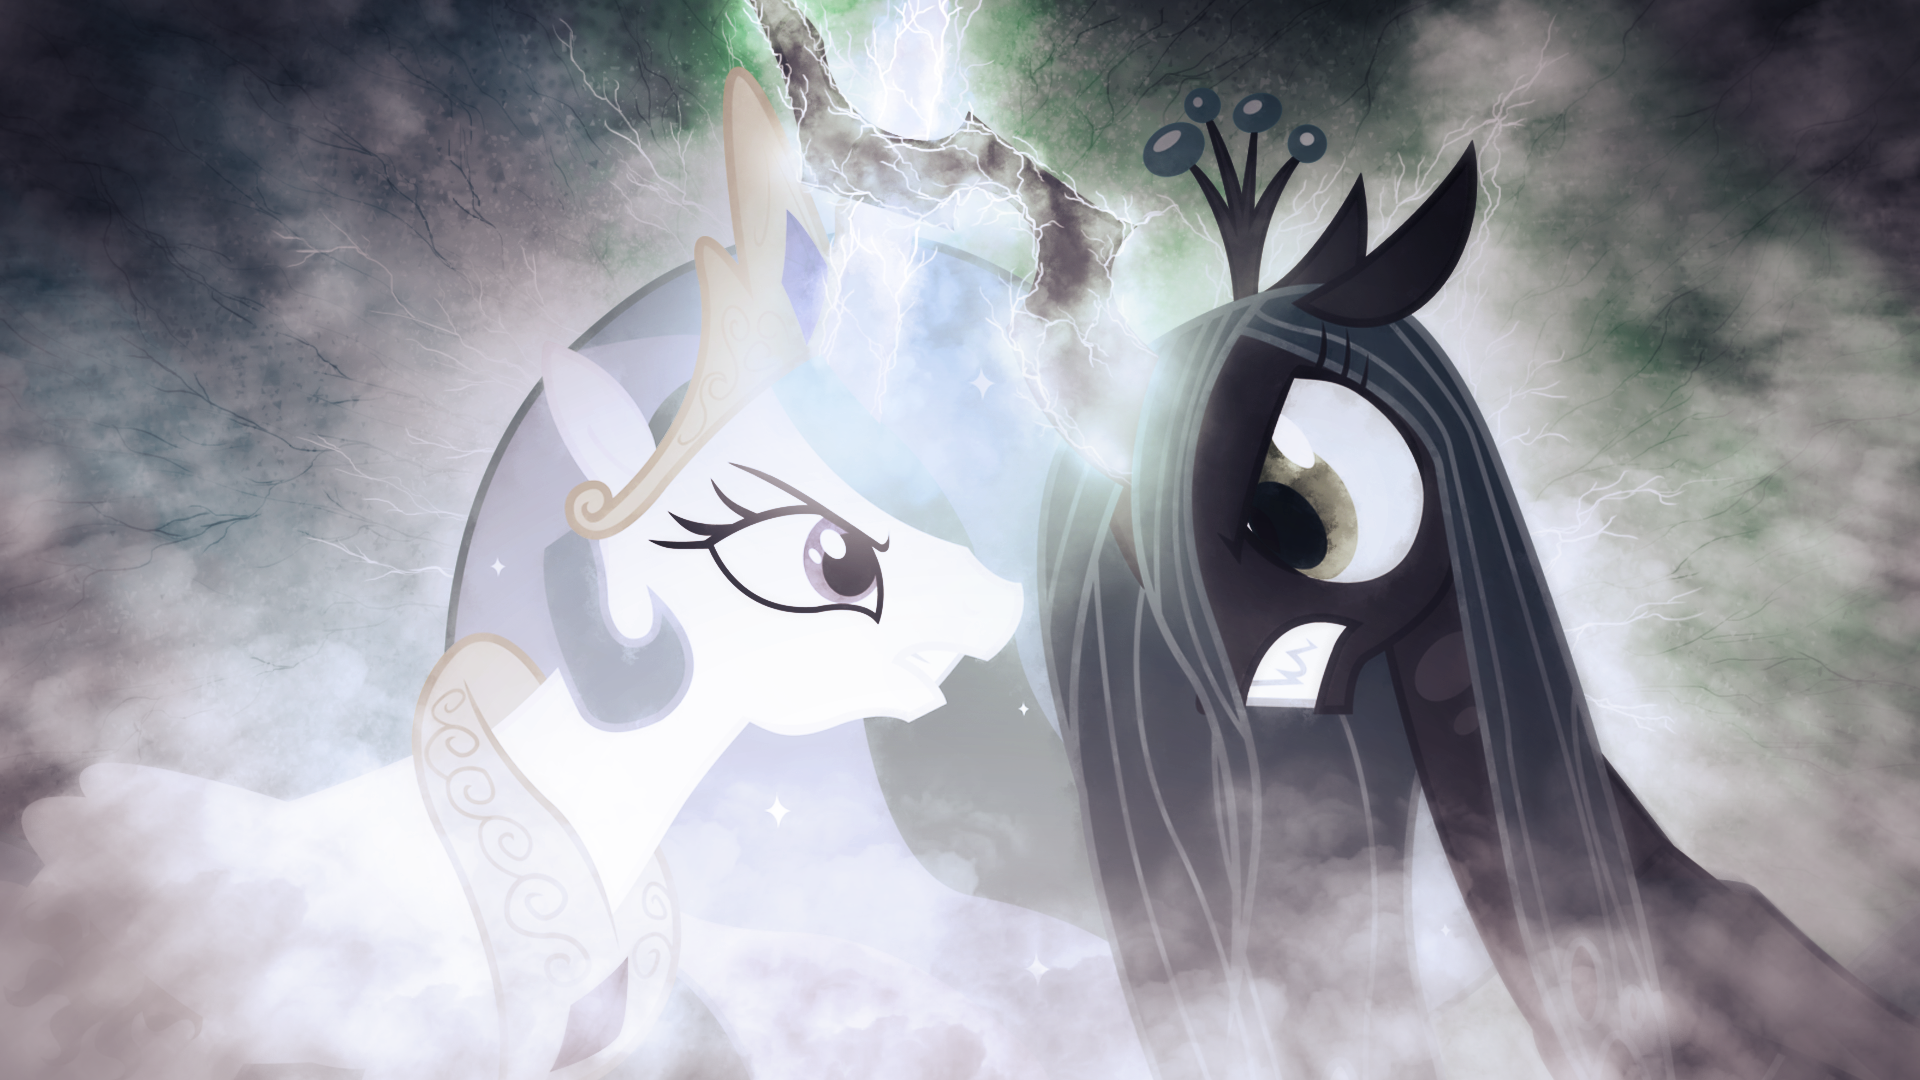 Duel of the Fates by DDHyuugaman and SandwichDelta